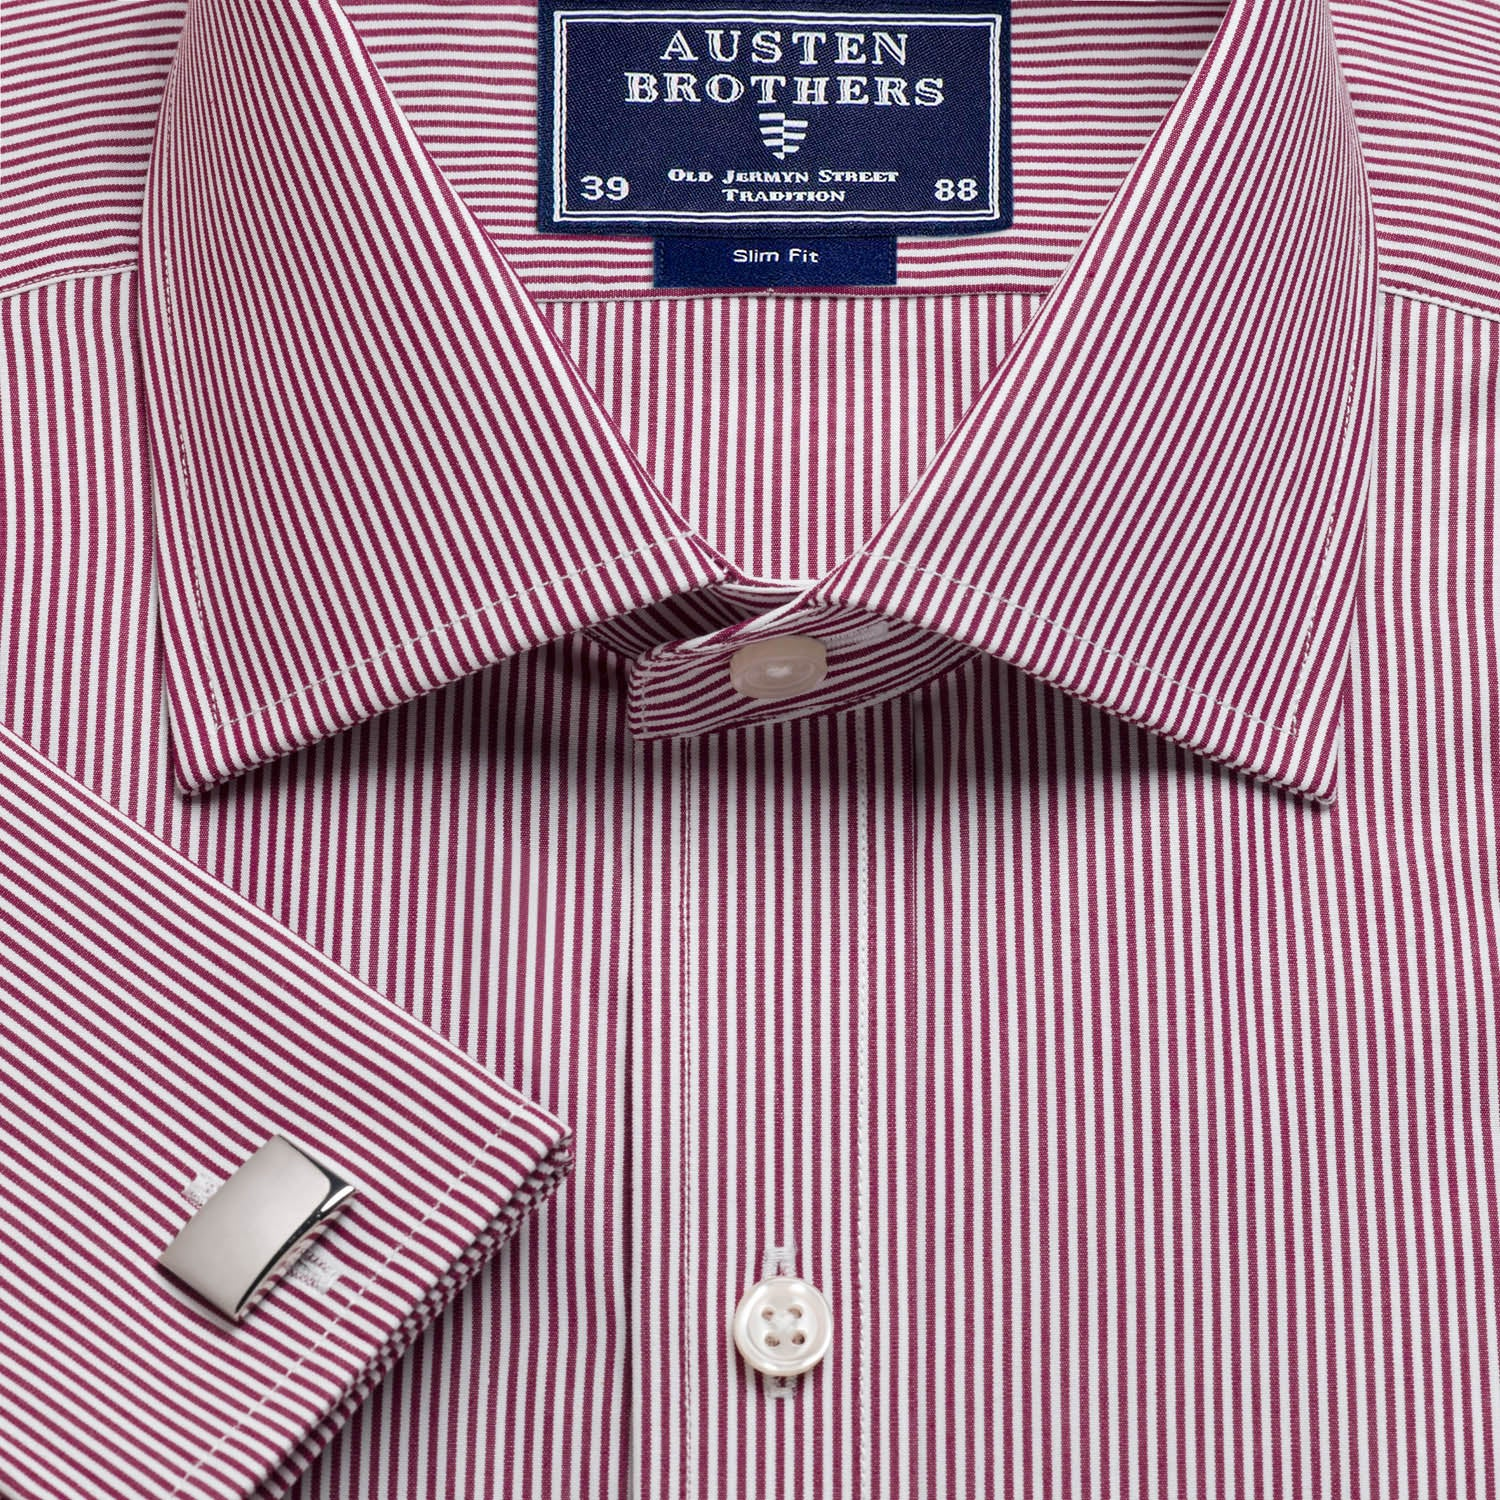 55e6031915 Made 2 Order - Burgundy French Bengal Stripe Poplin | Austen Brothers